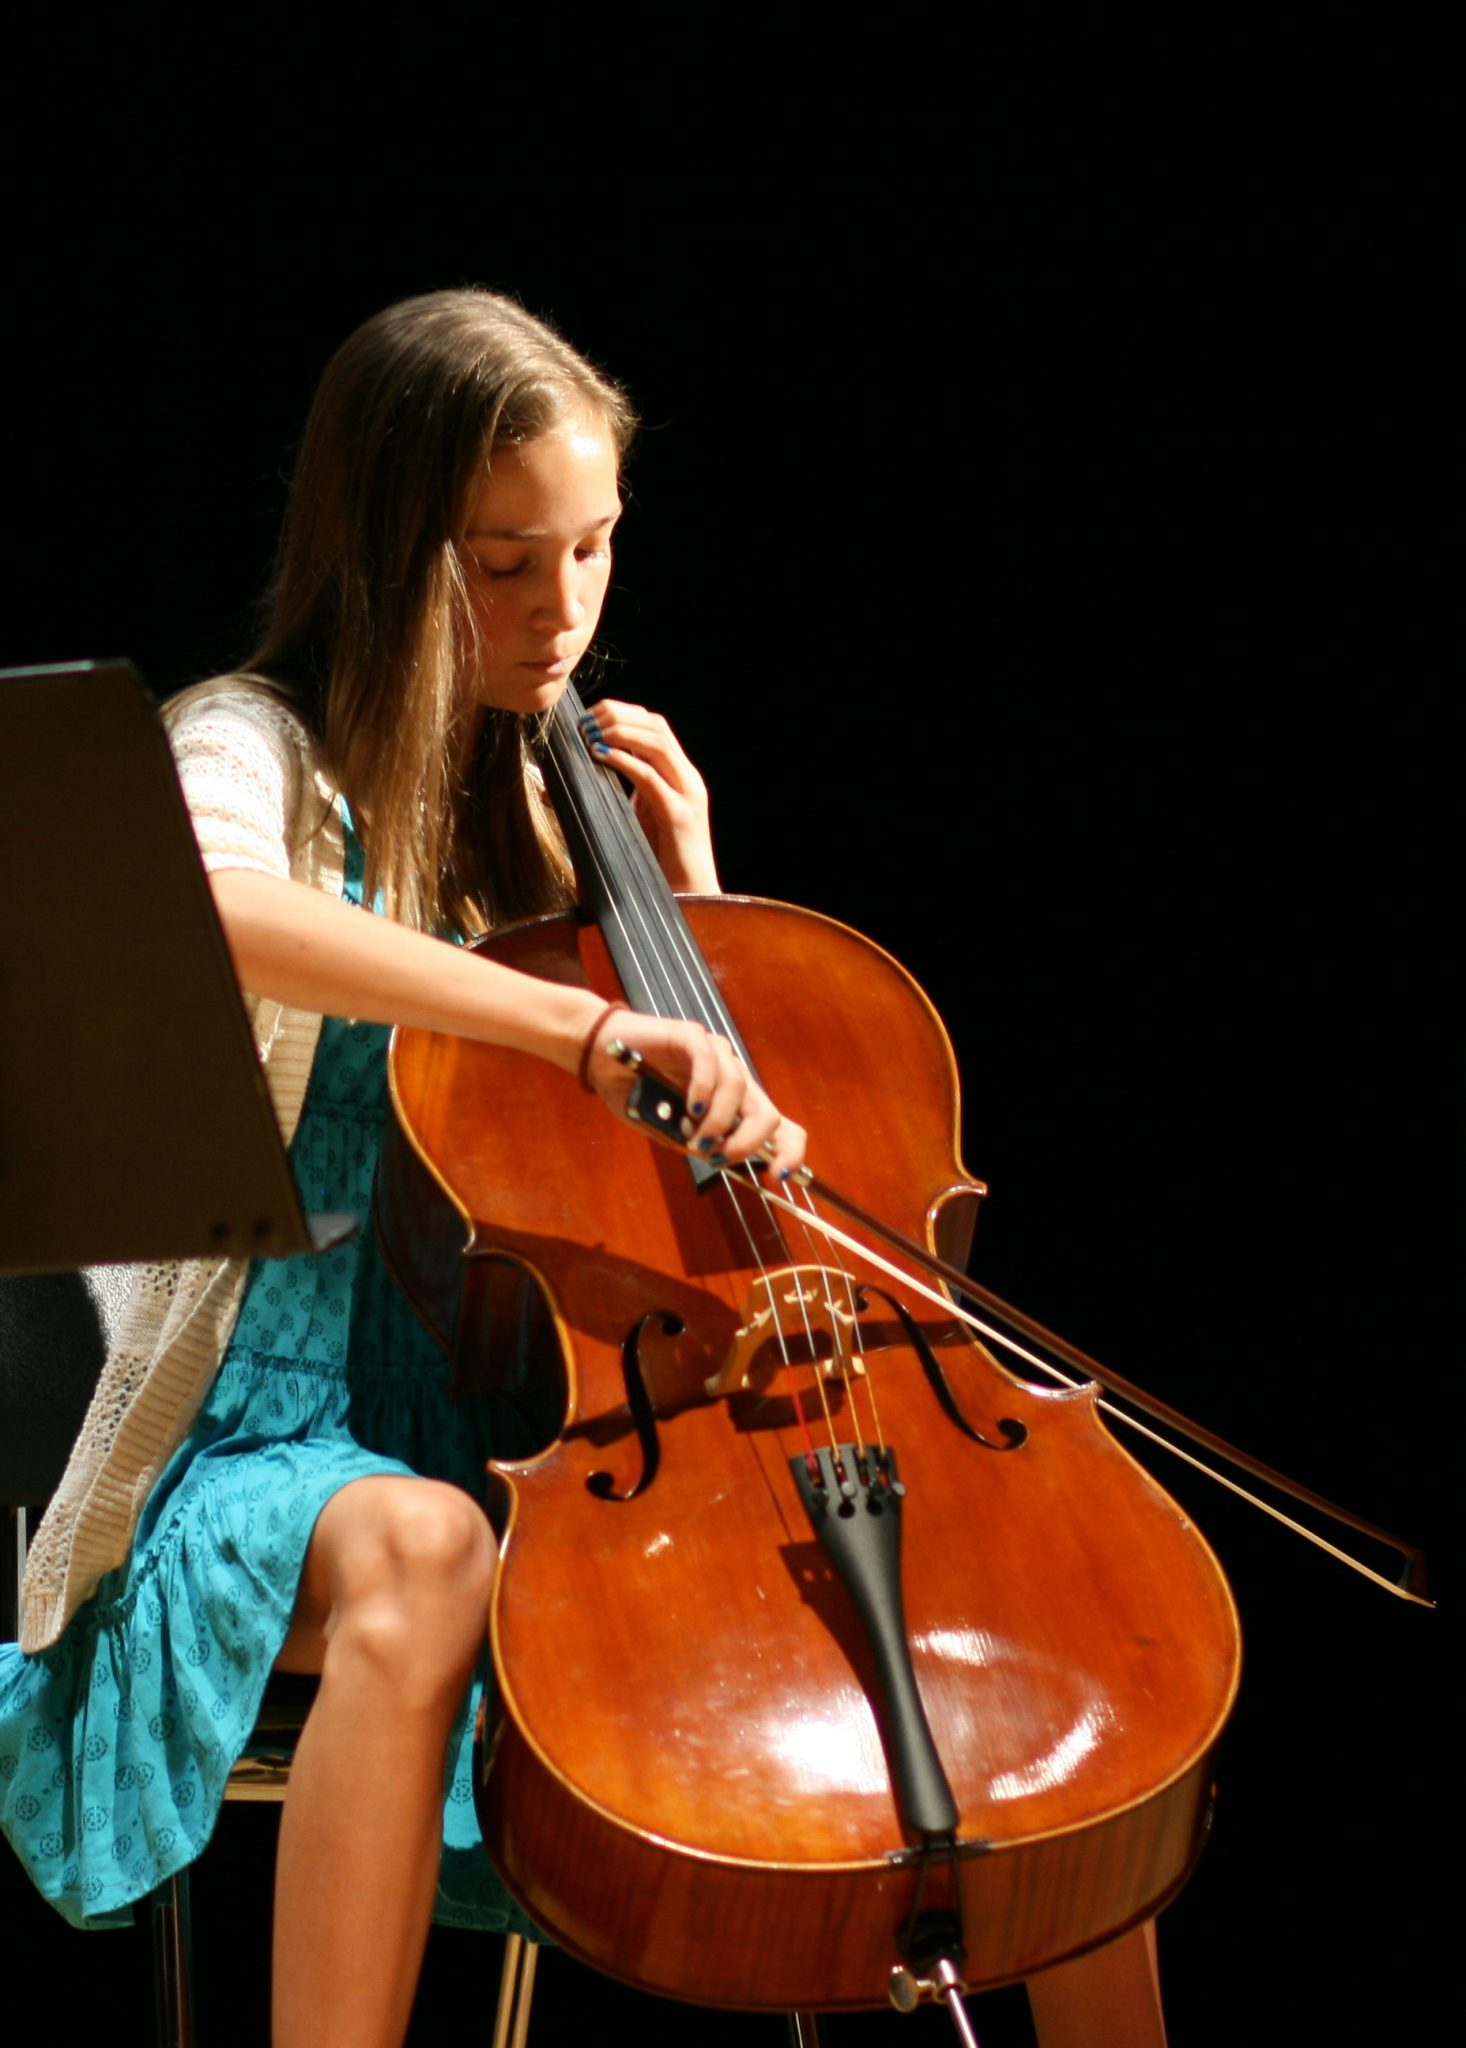 cello in if i stay movie